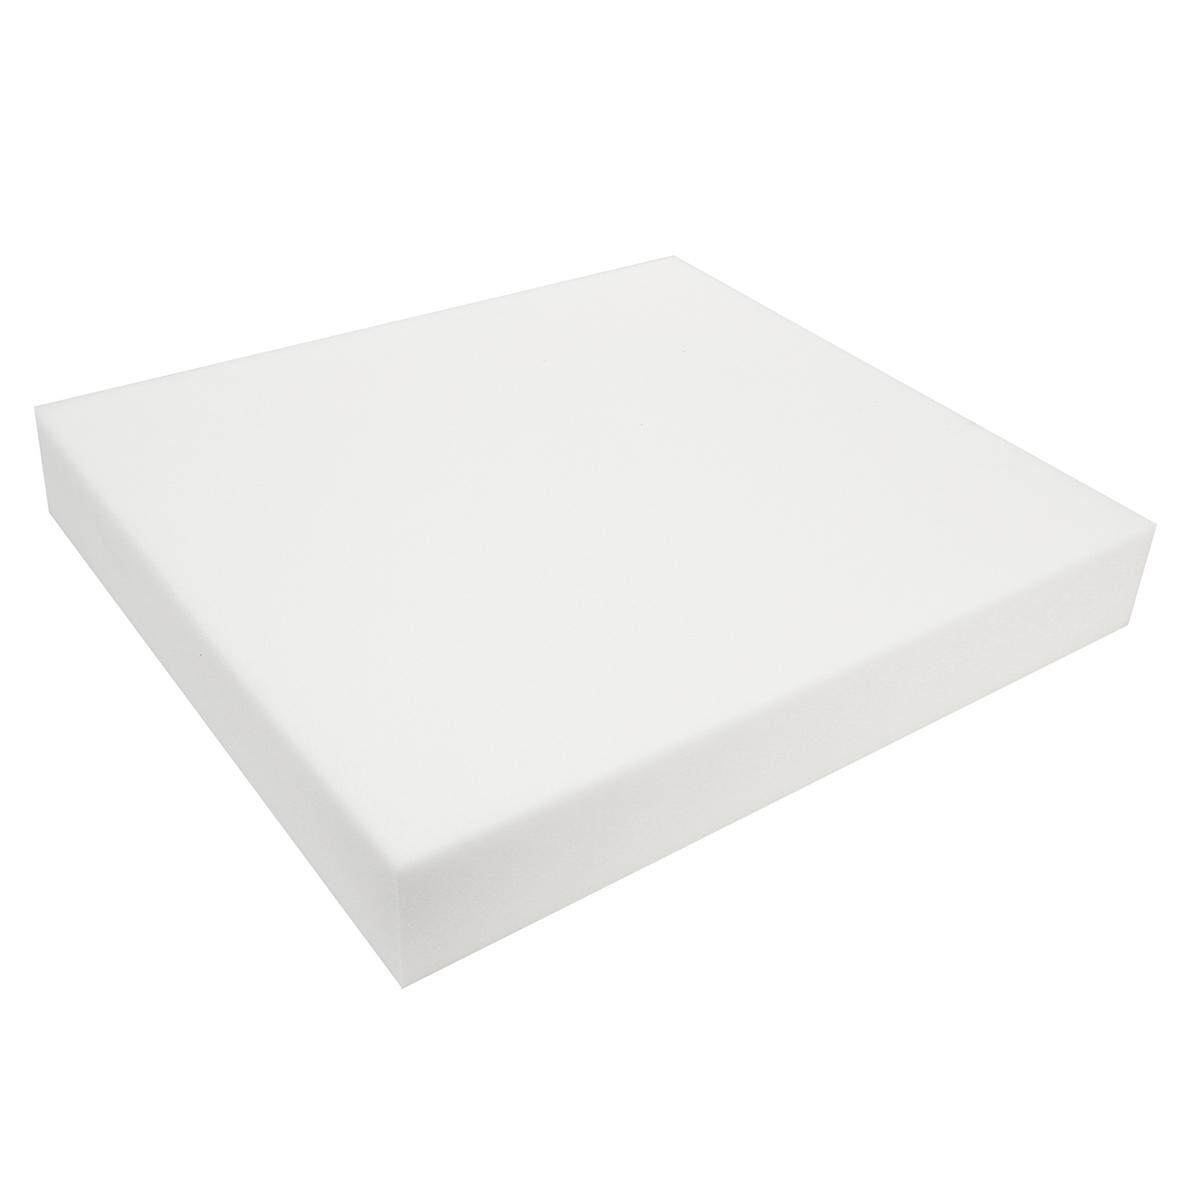 24 White Square High Density Seat Foam Sheet Upholstery Cushion Replacements # 5cm